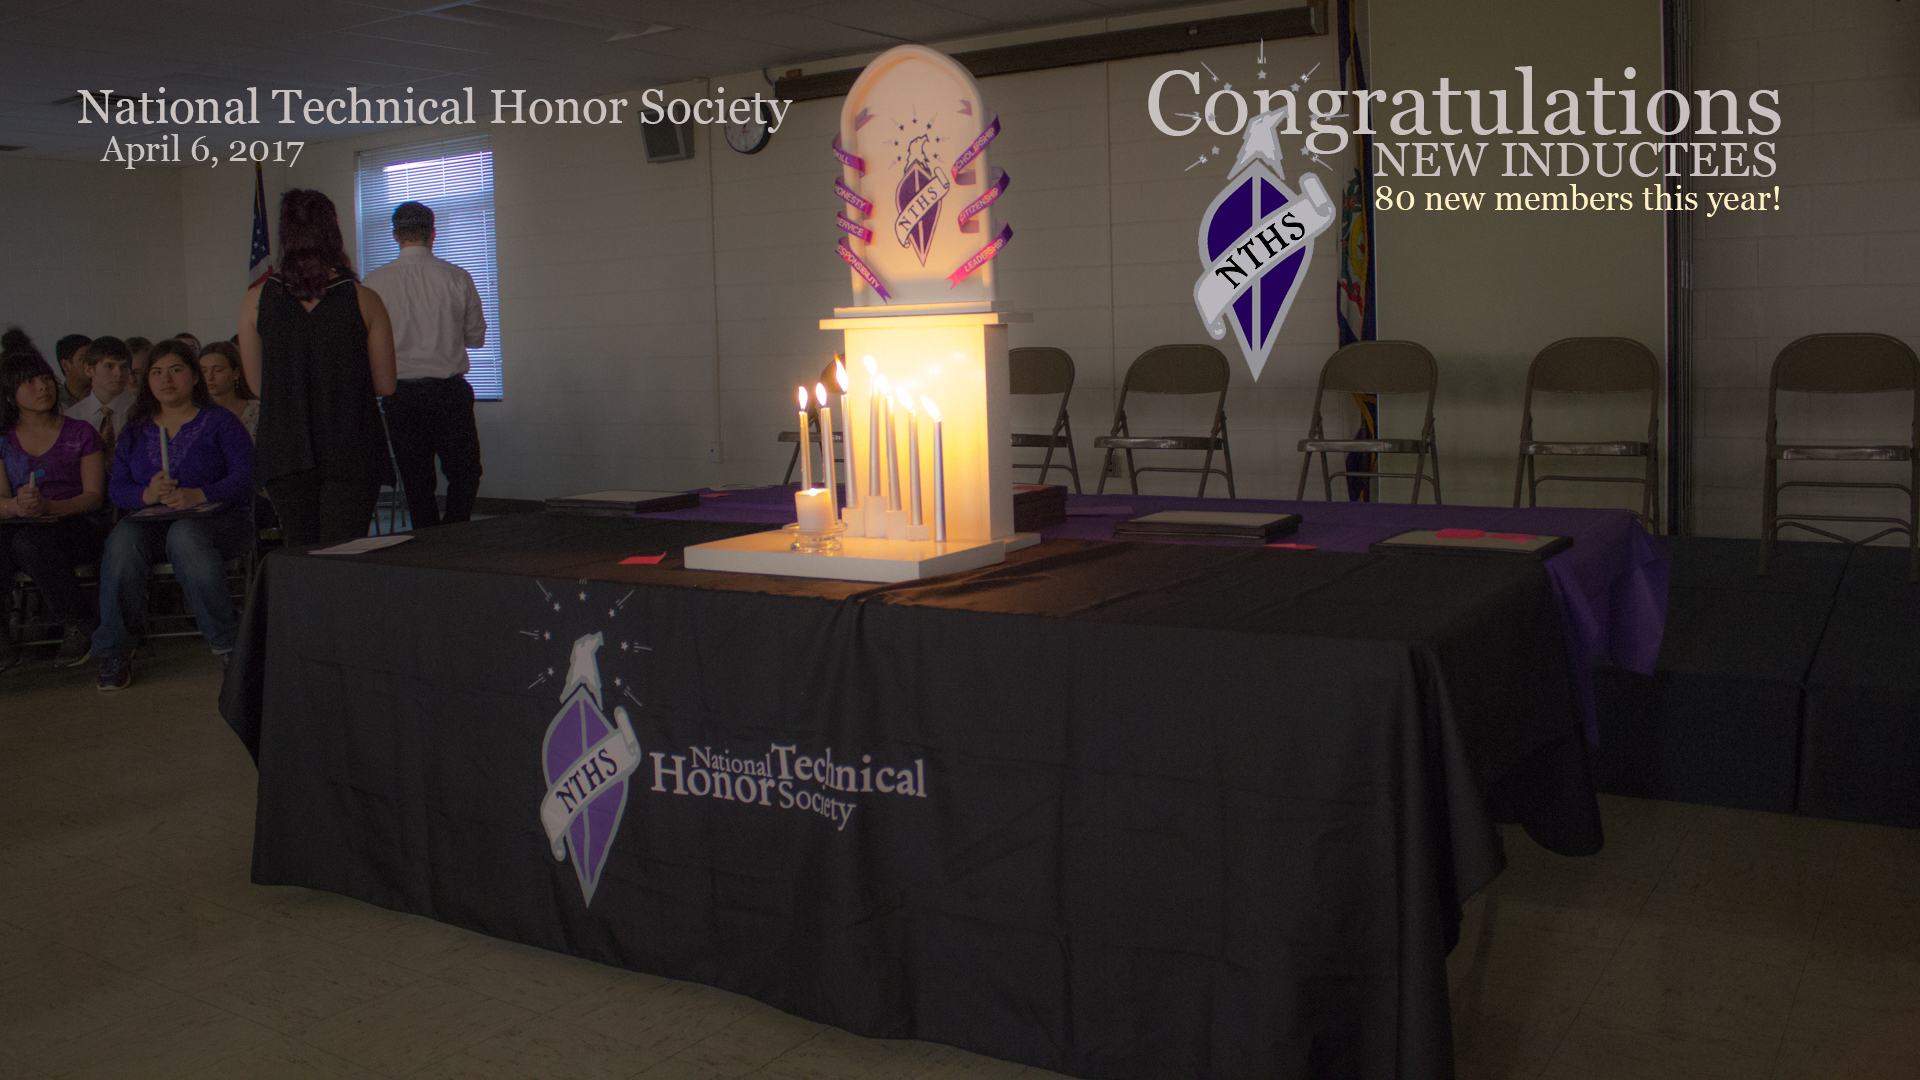 NTHS Induction Cremony